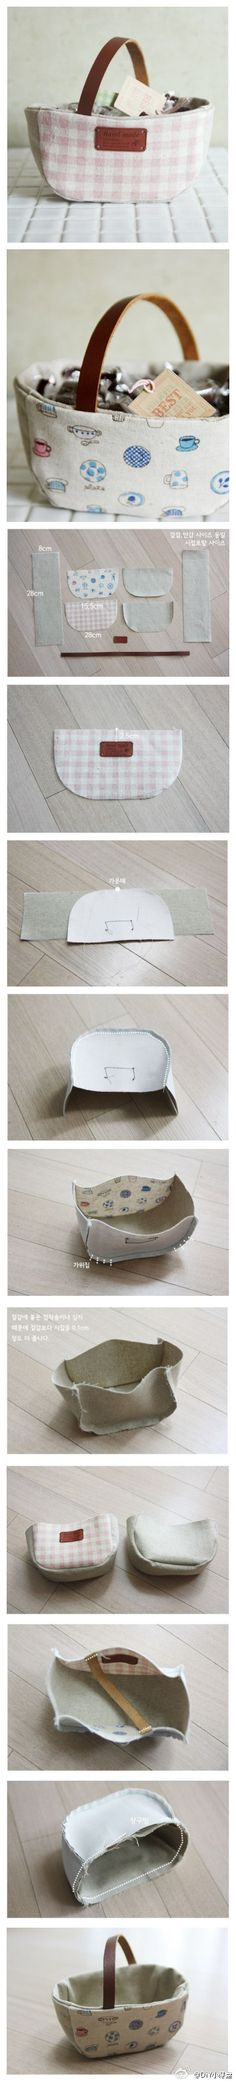 Bag with special handle